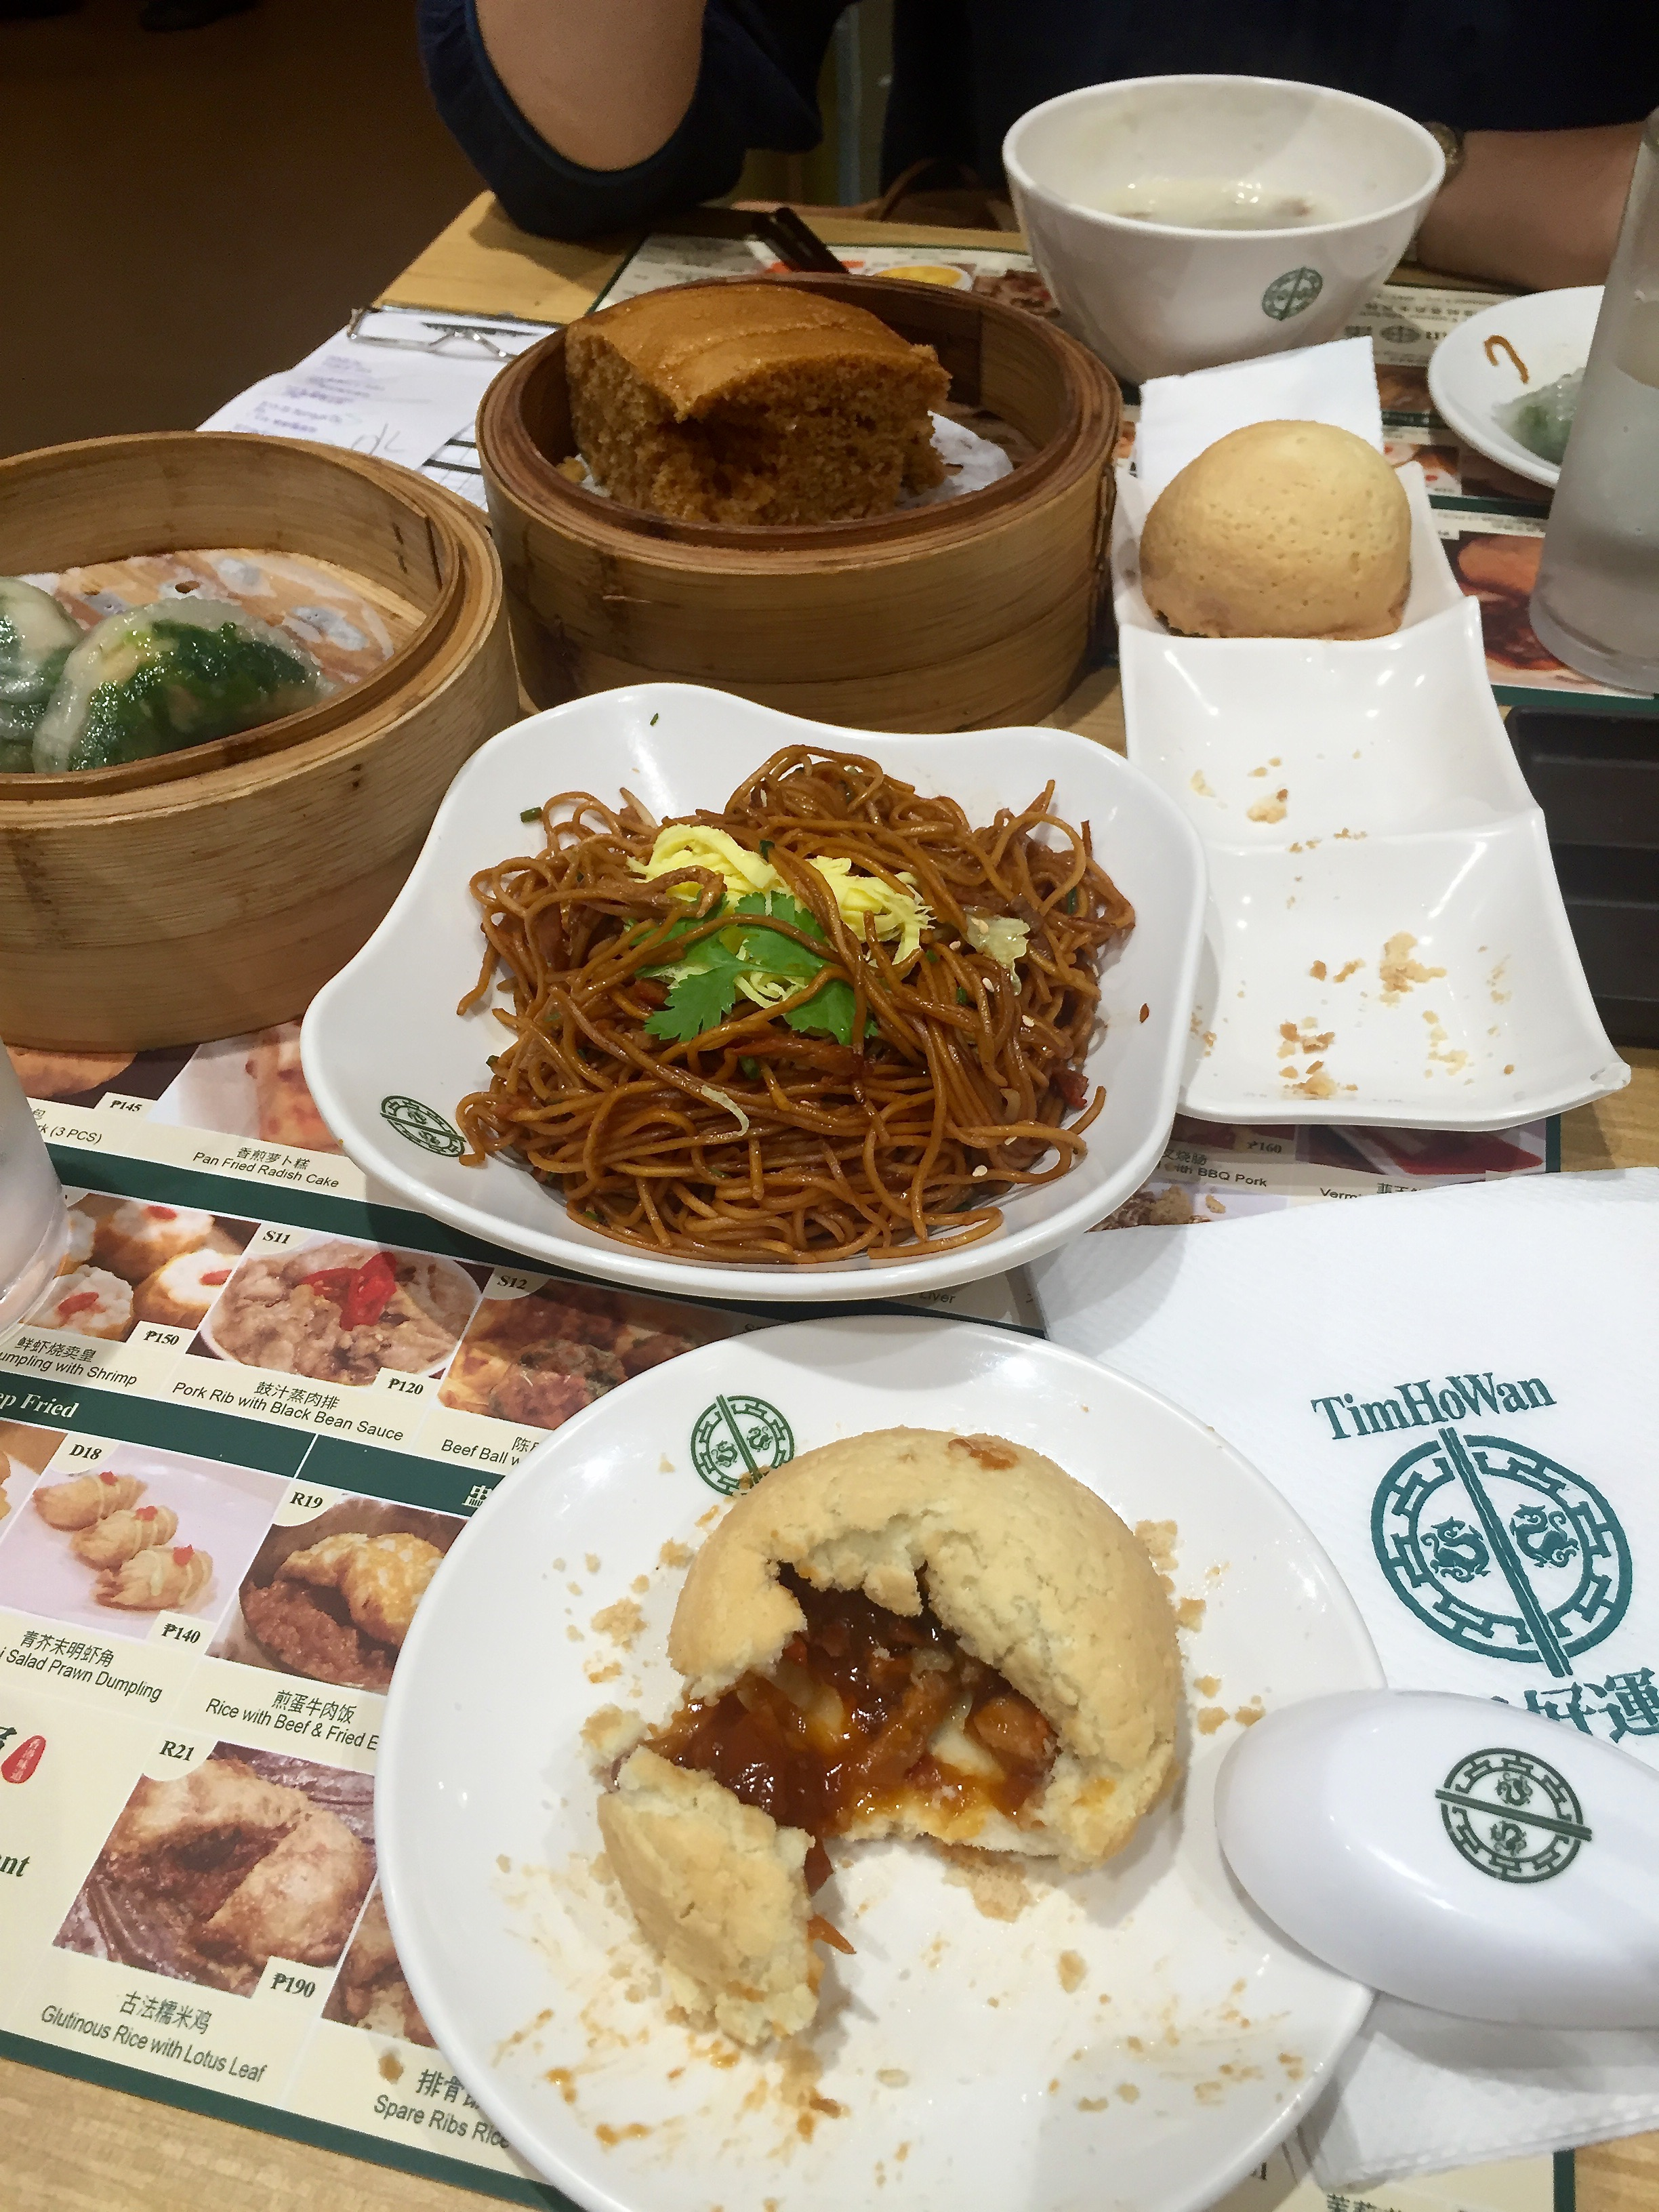 Lunch at Tim Ho Wan